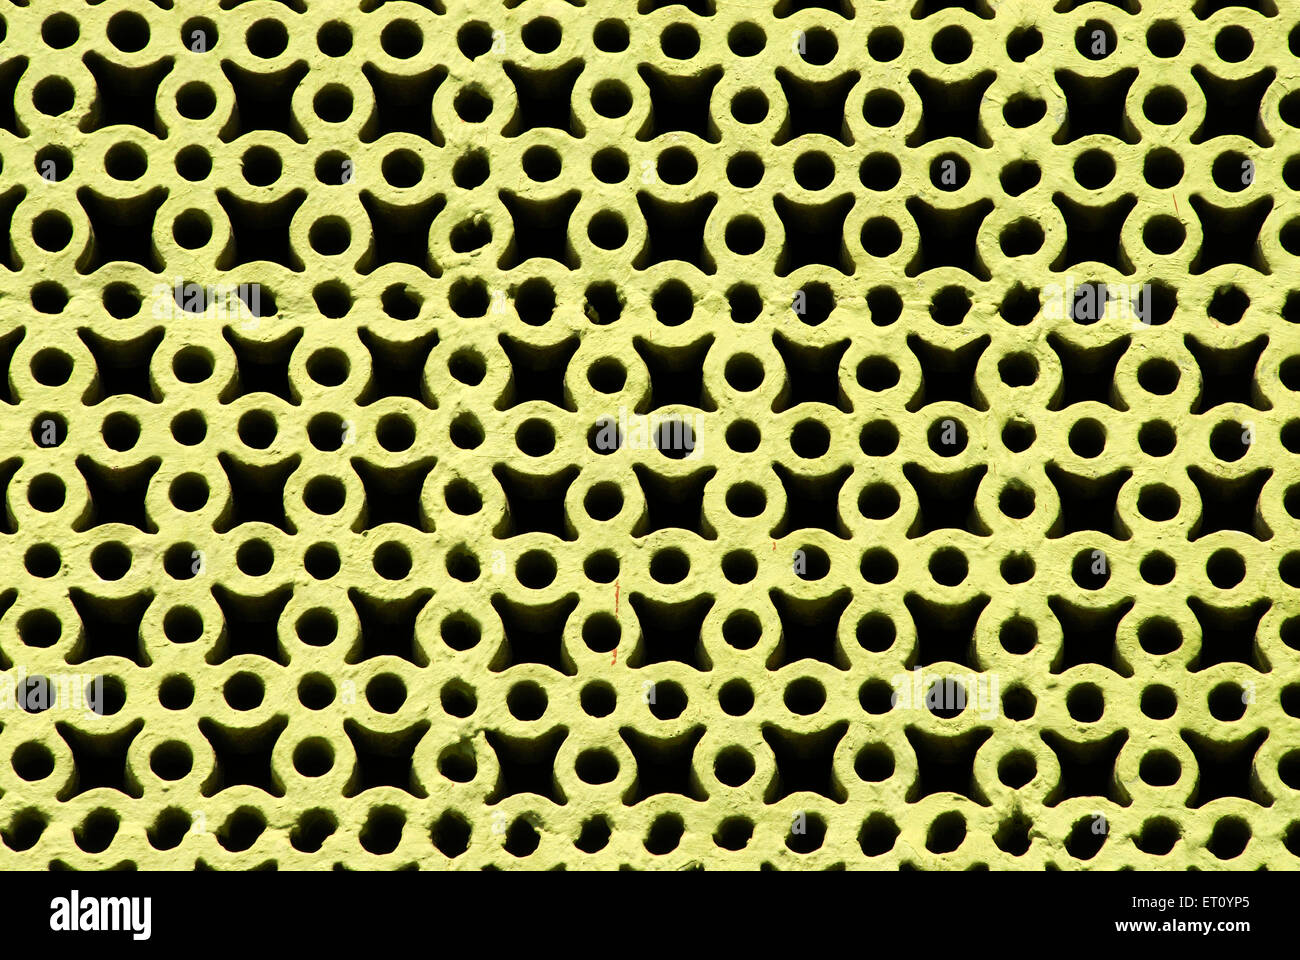 Reinforced cement concrete jali used at staircase of building for ventilation and light ; Pune ; Maharashtra ; India - Stock Image